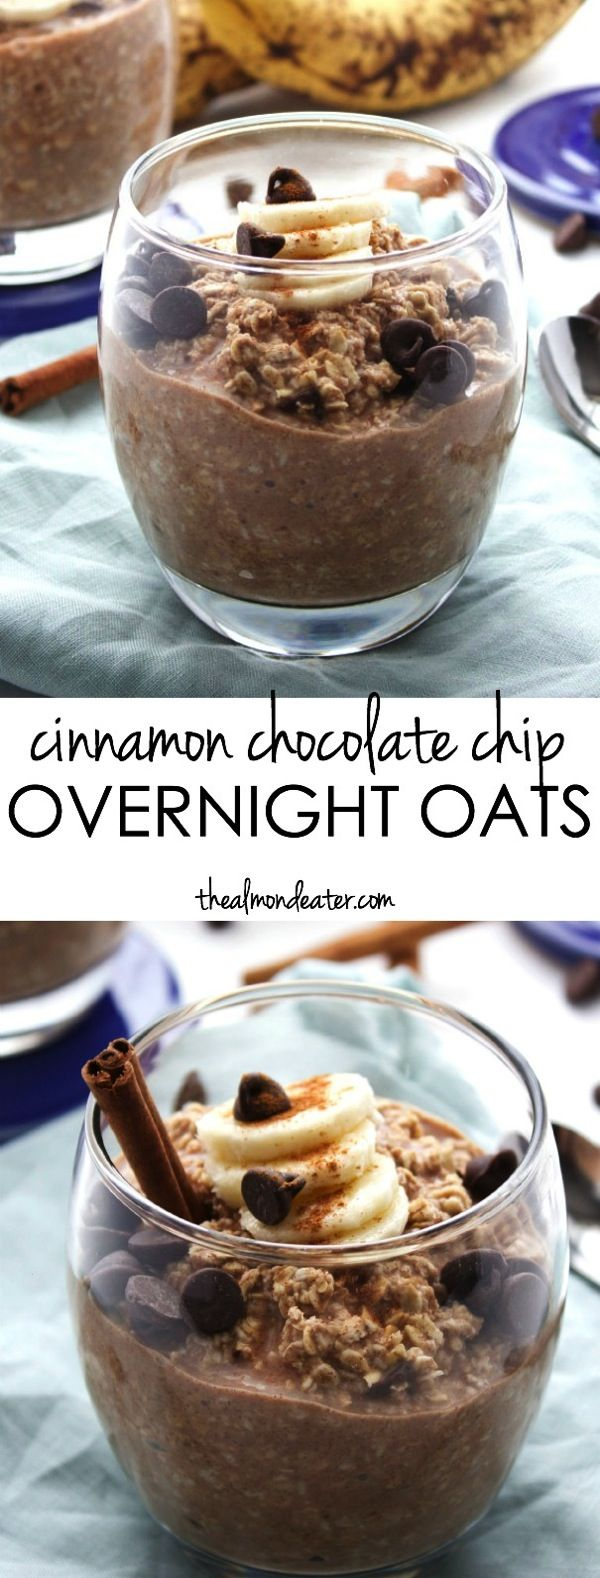 A SWEET breakfast that's also healthy! Cinnamon, chocolate and banana in one…